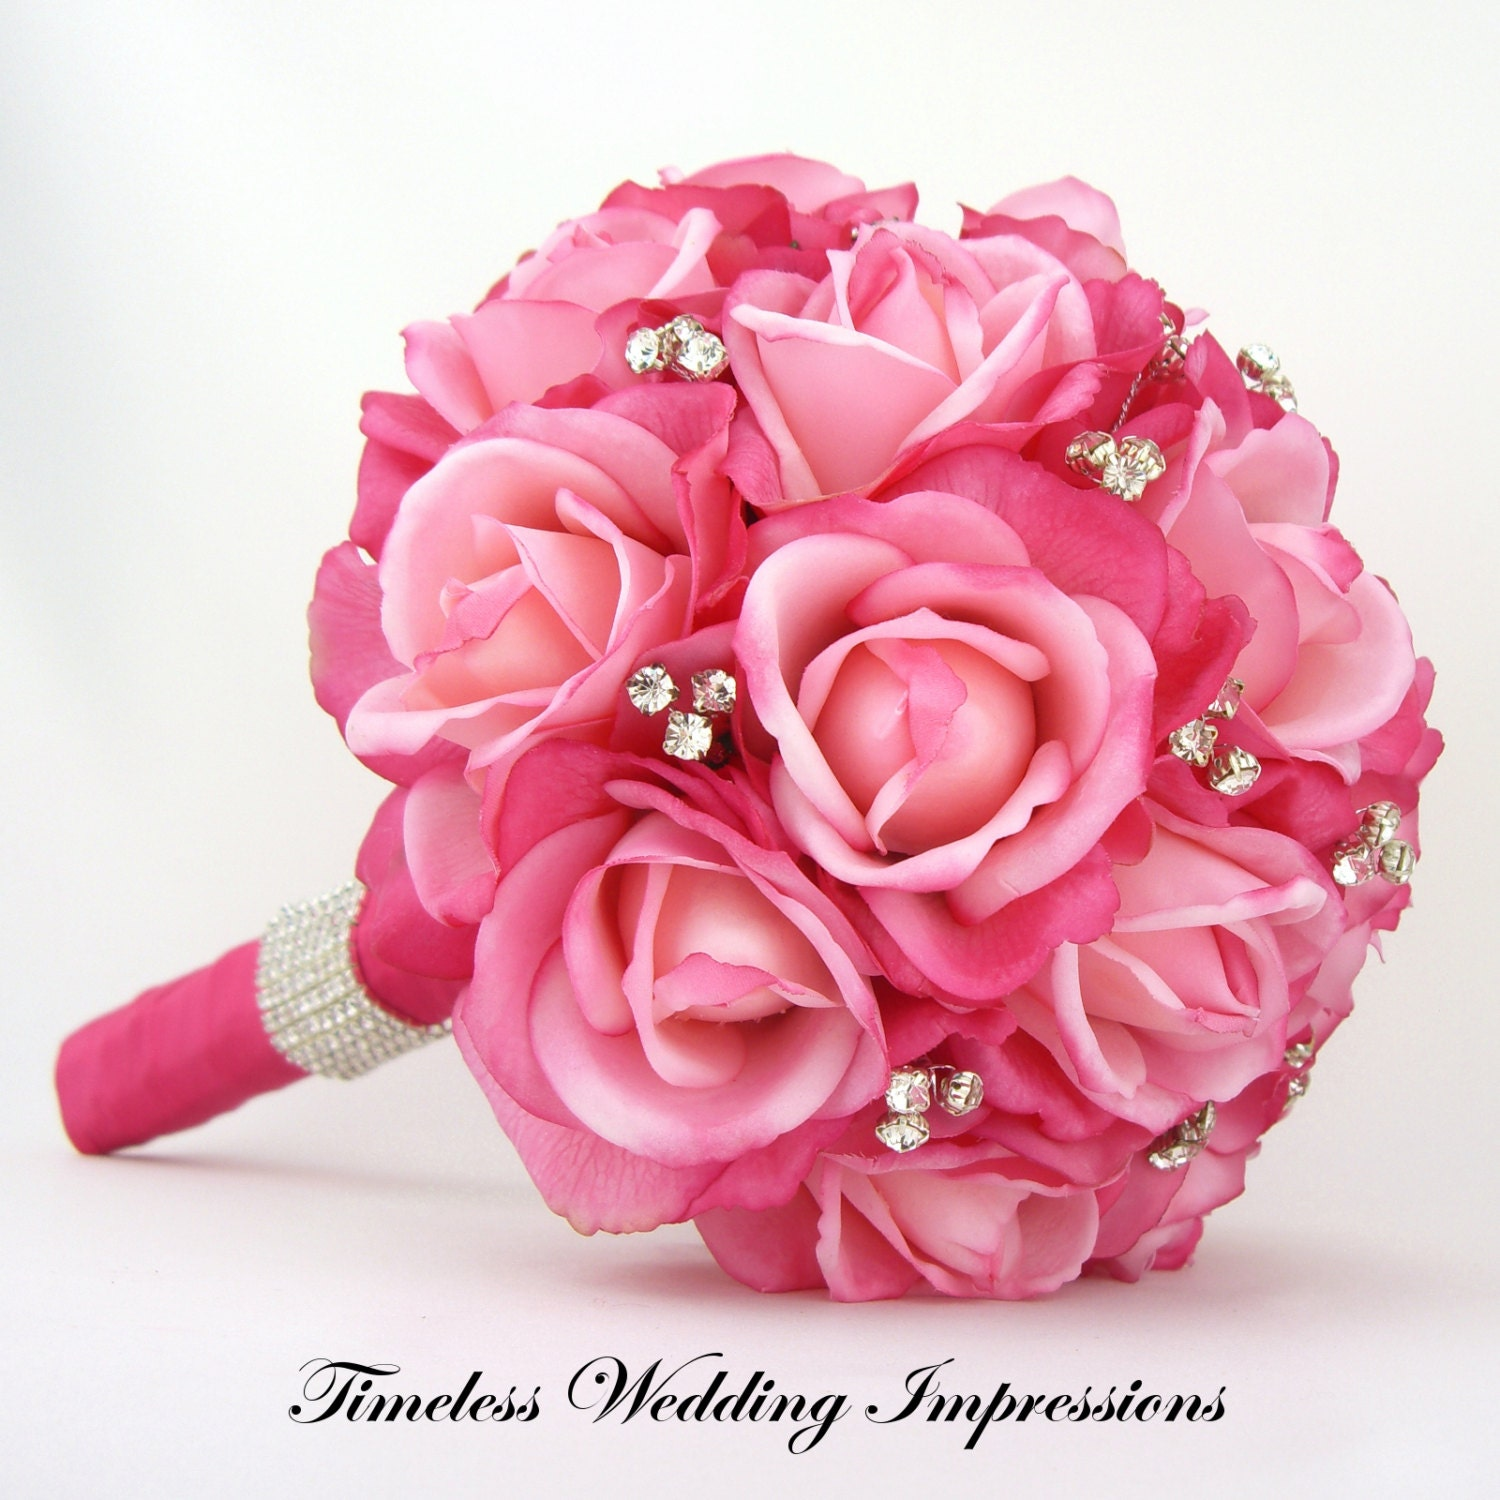 Bridal Flowers With Bling : Hot pink bridal bouquet roses bling crystals by